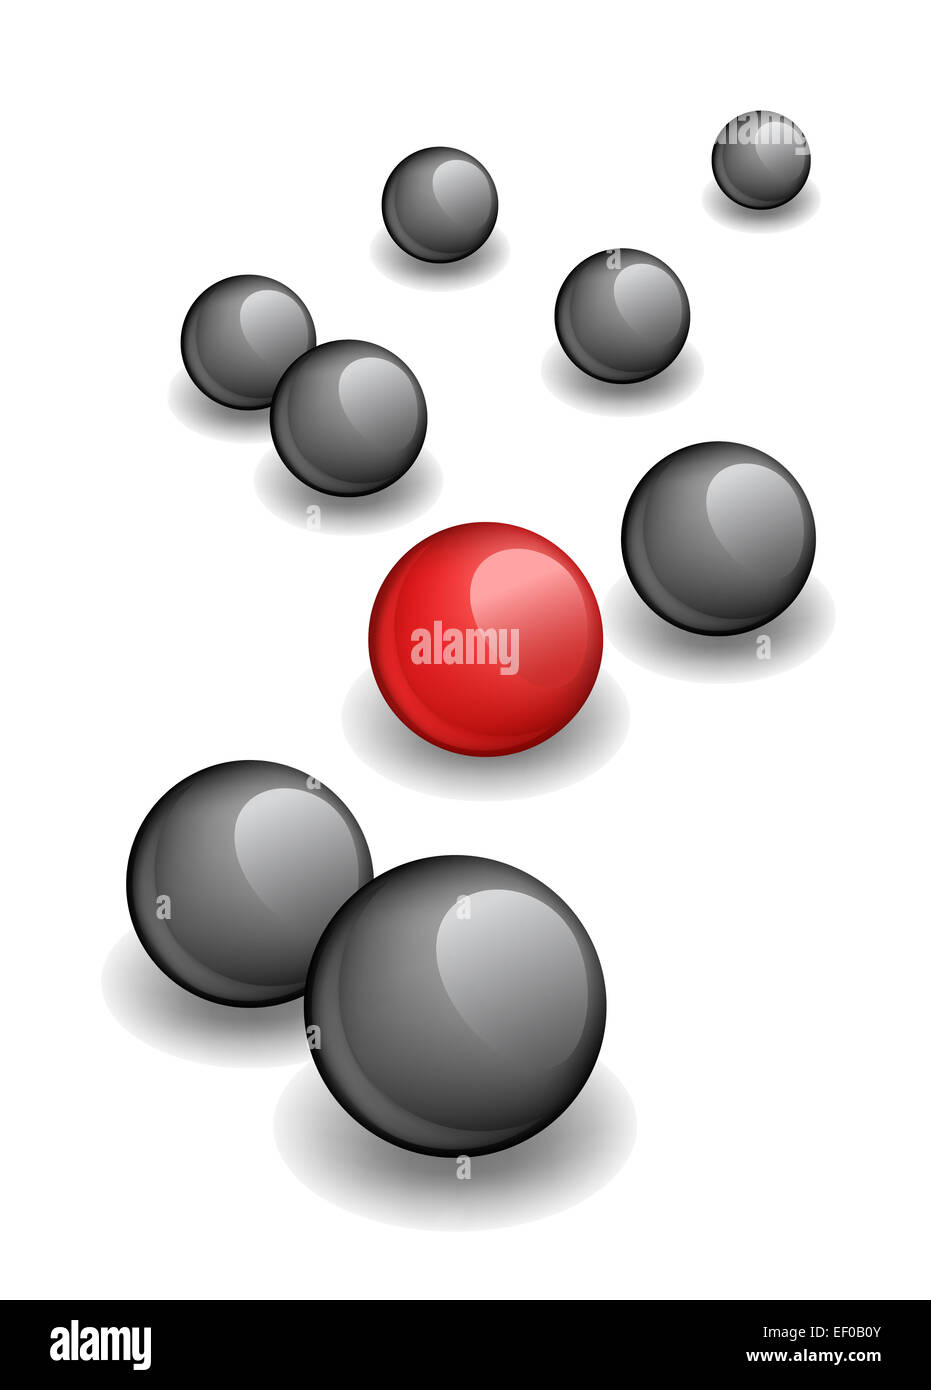 Vector illustration of red ball within black ones - Stock Image